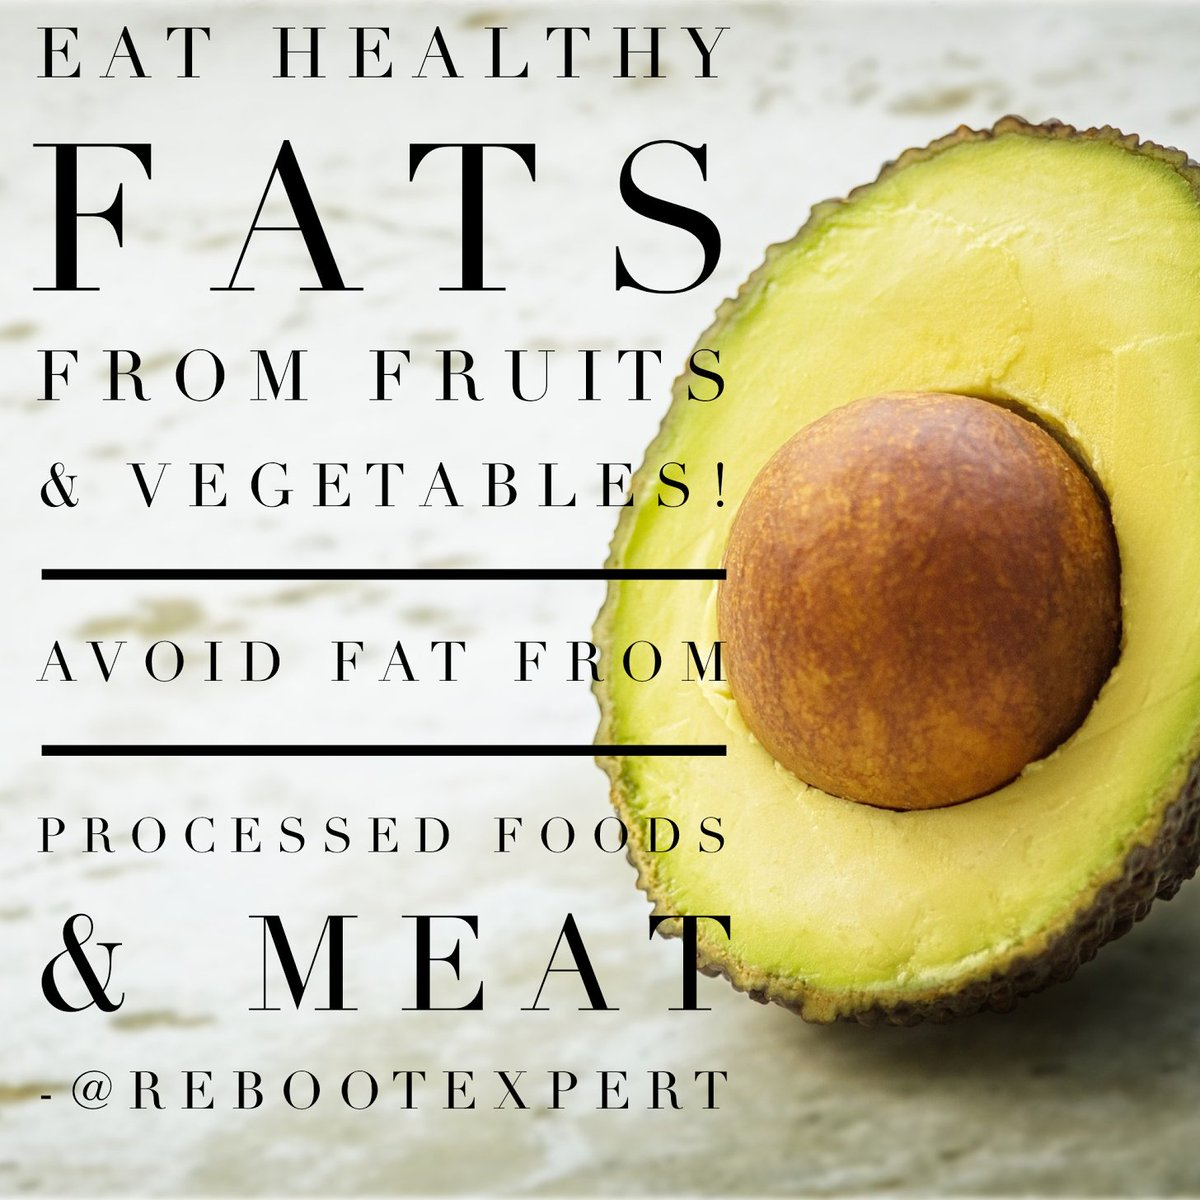 Are you eating #healthy fat from plant sources and NOT from #ProcessedFoods and #Meat? #CleanEating #Unprocessed #Healthy #Health<br>http://pic.twitter.com/uDkeeNrHfp